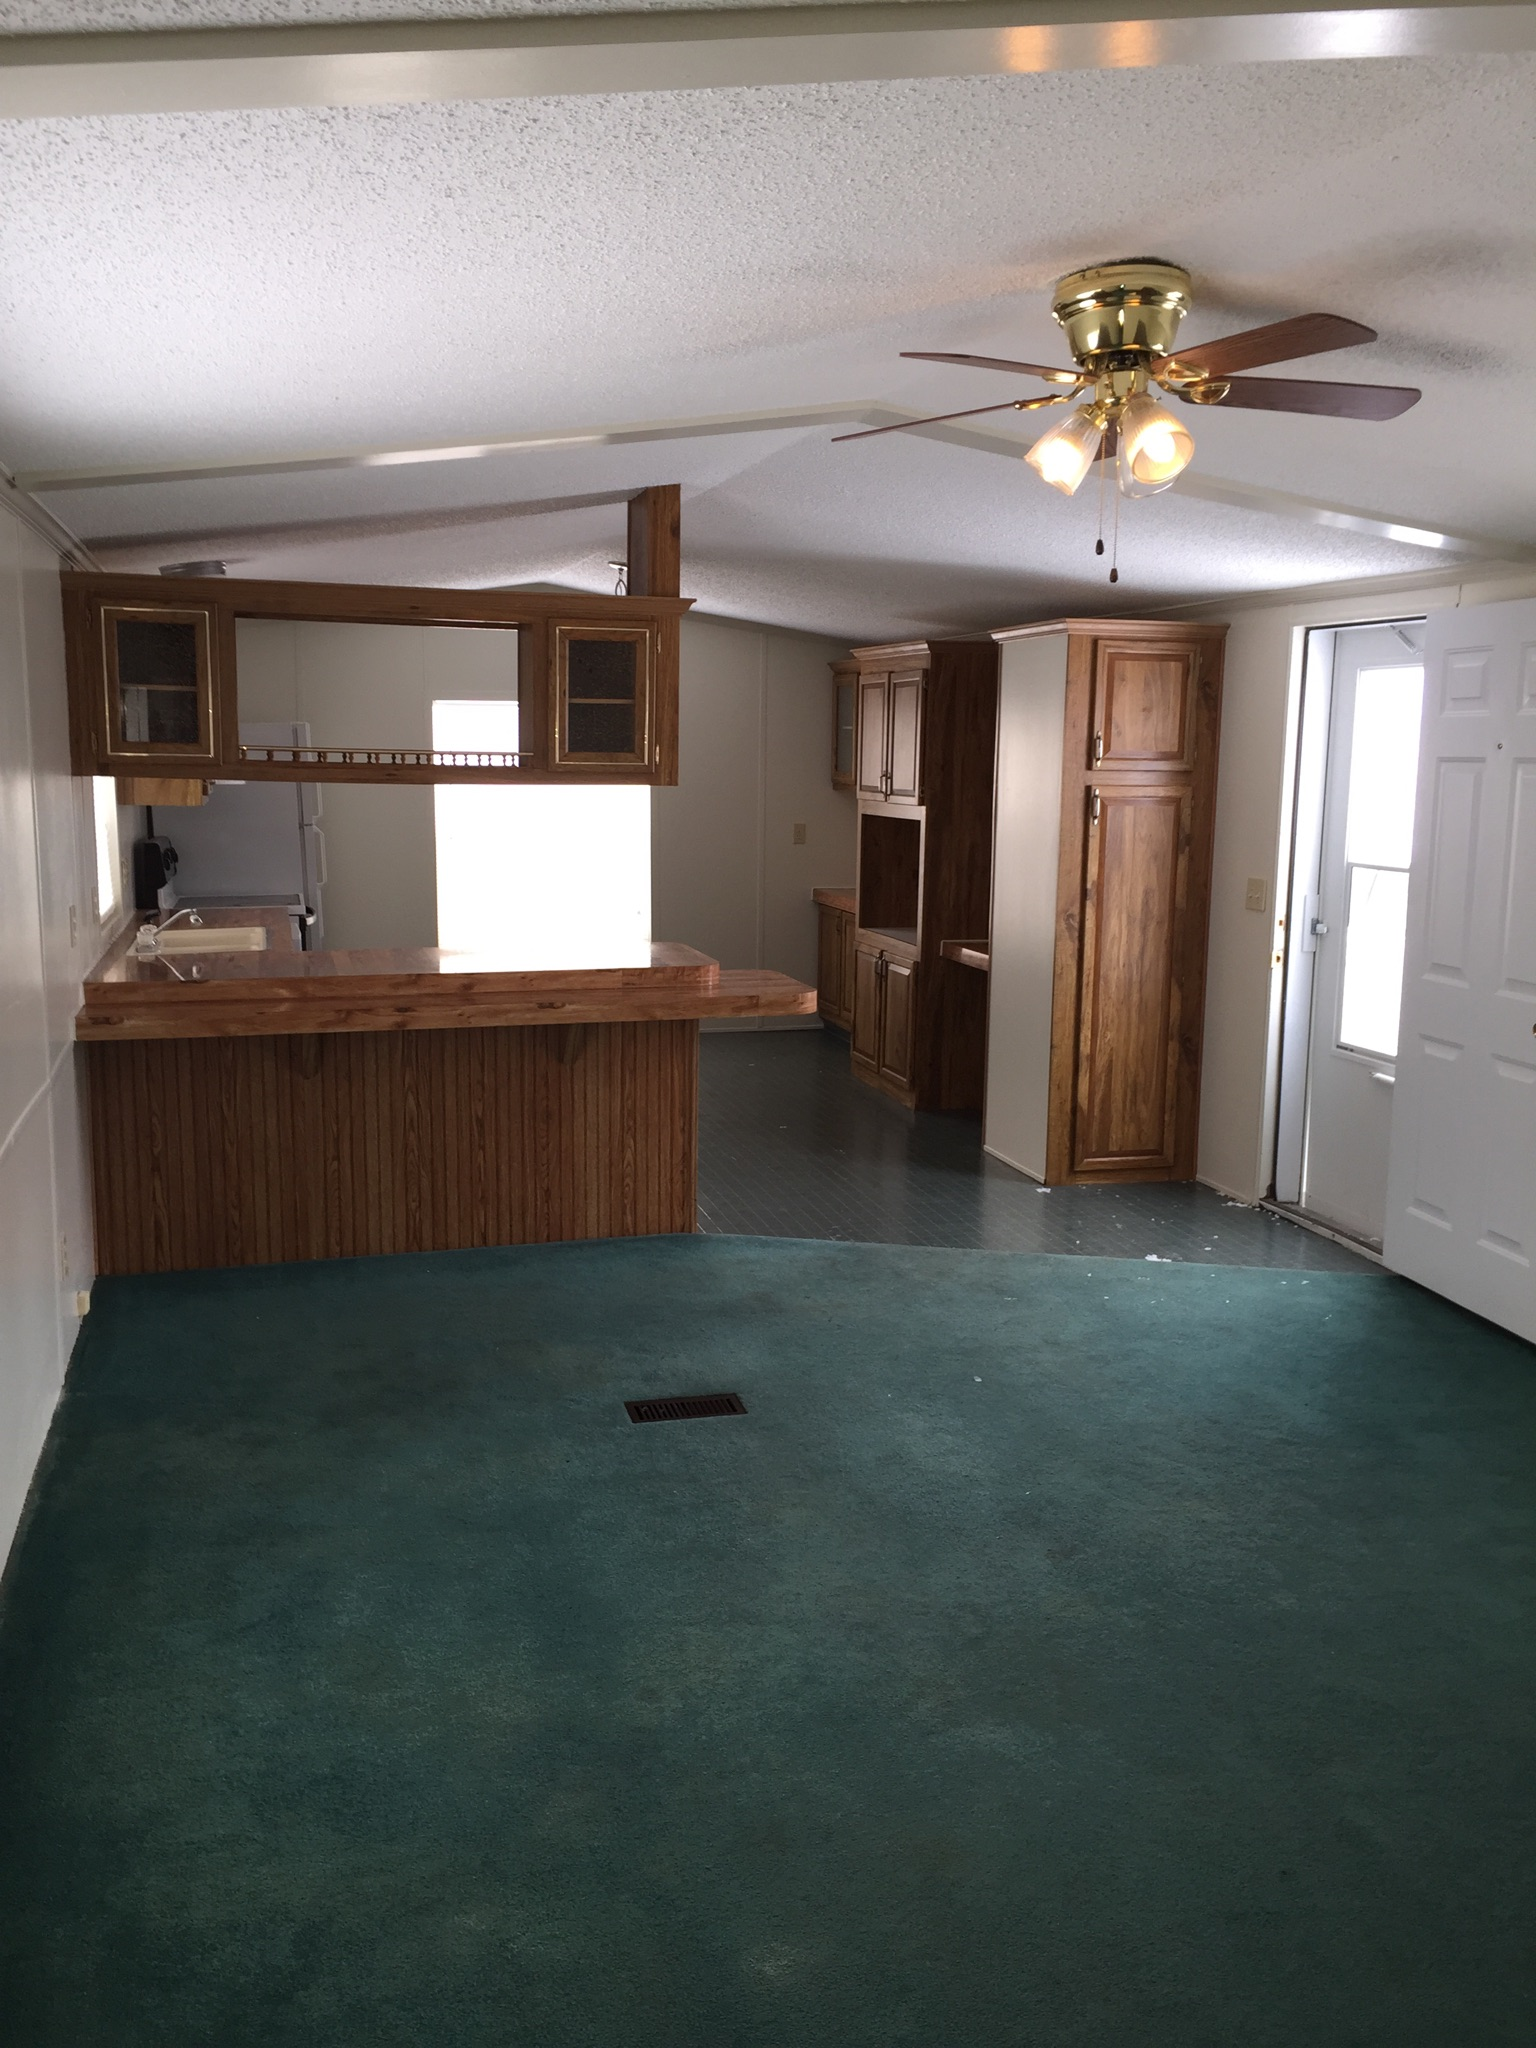 Lot 49 Mobile Home Villa 1988 Champion 14 70 2 Bedroom 1